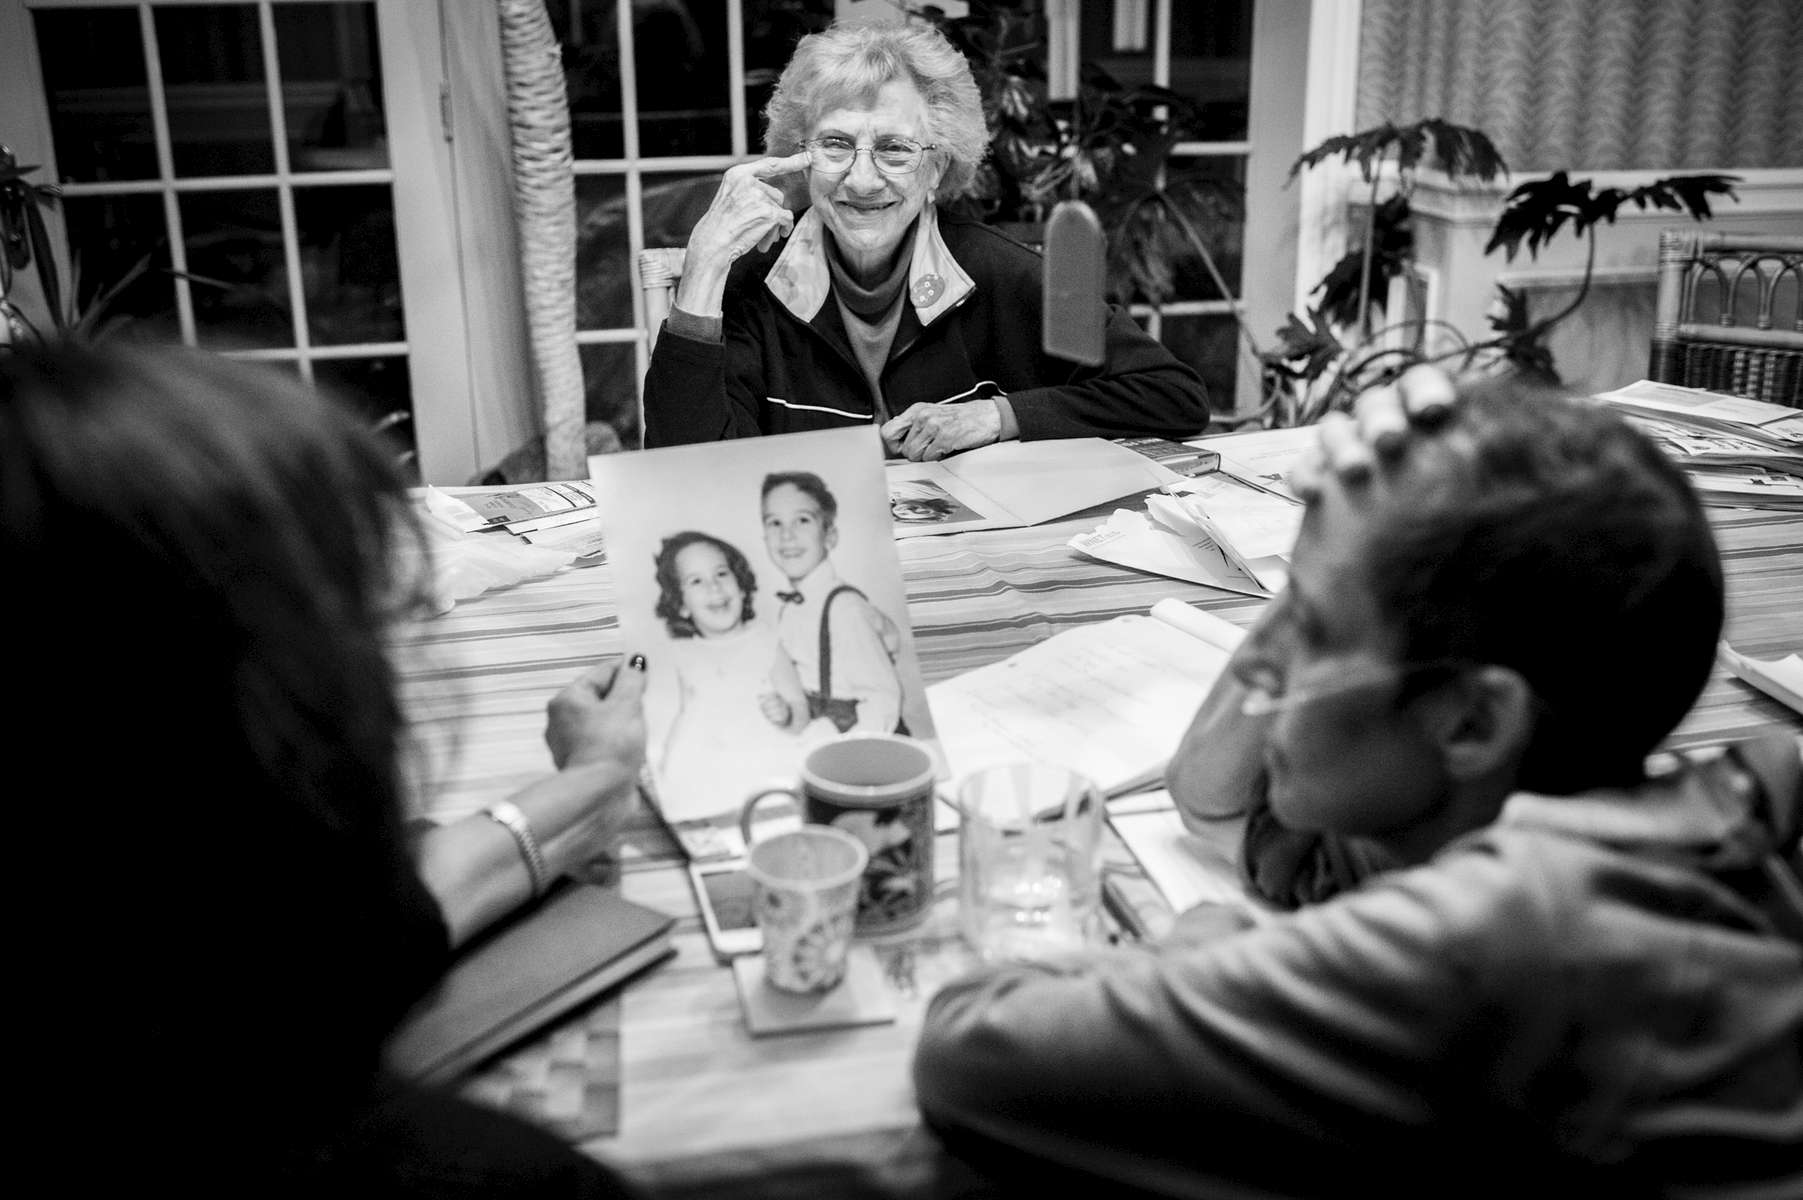 Laurel Borowick sits at her dining room table with best friend Carol Woltz, left, and looks through old photographs that her mother, Marion, has brought over from her childhood. They bring her back to a time and place at the beginning of her life. Chappaqua, NY. December 2014.